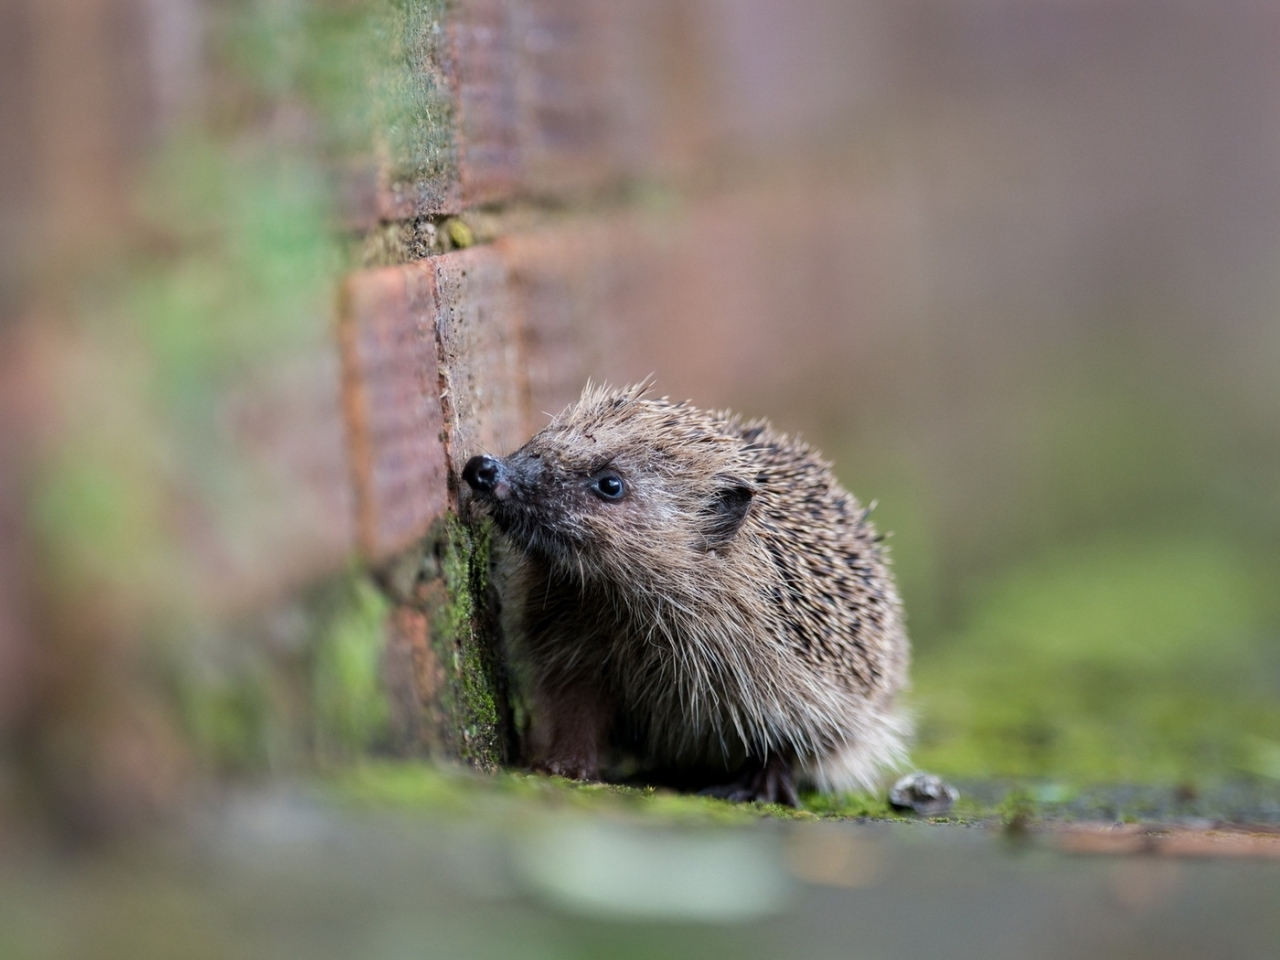 15682 download wallpaper Animals, Hedgehogs screensavers and pictures for free